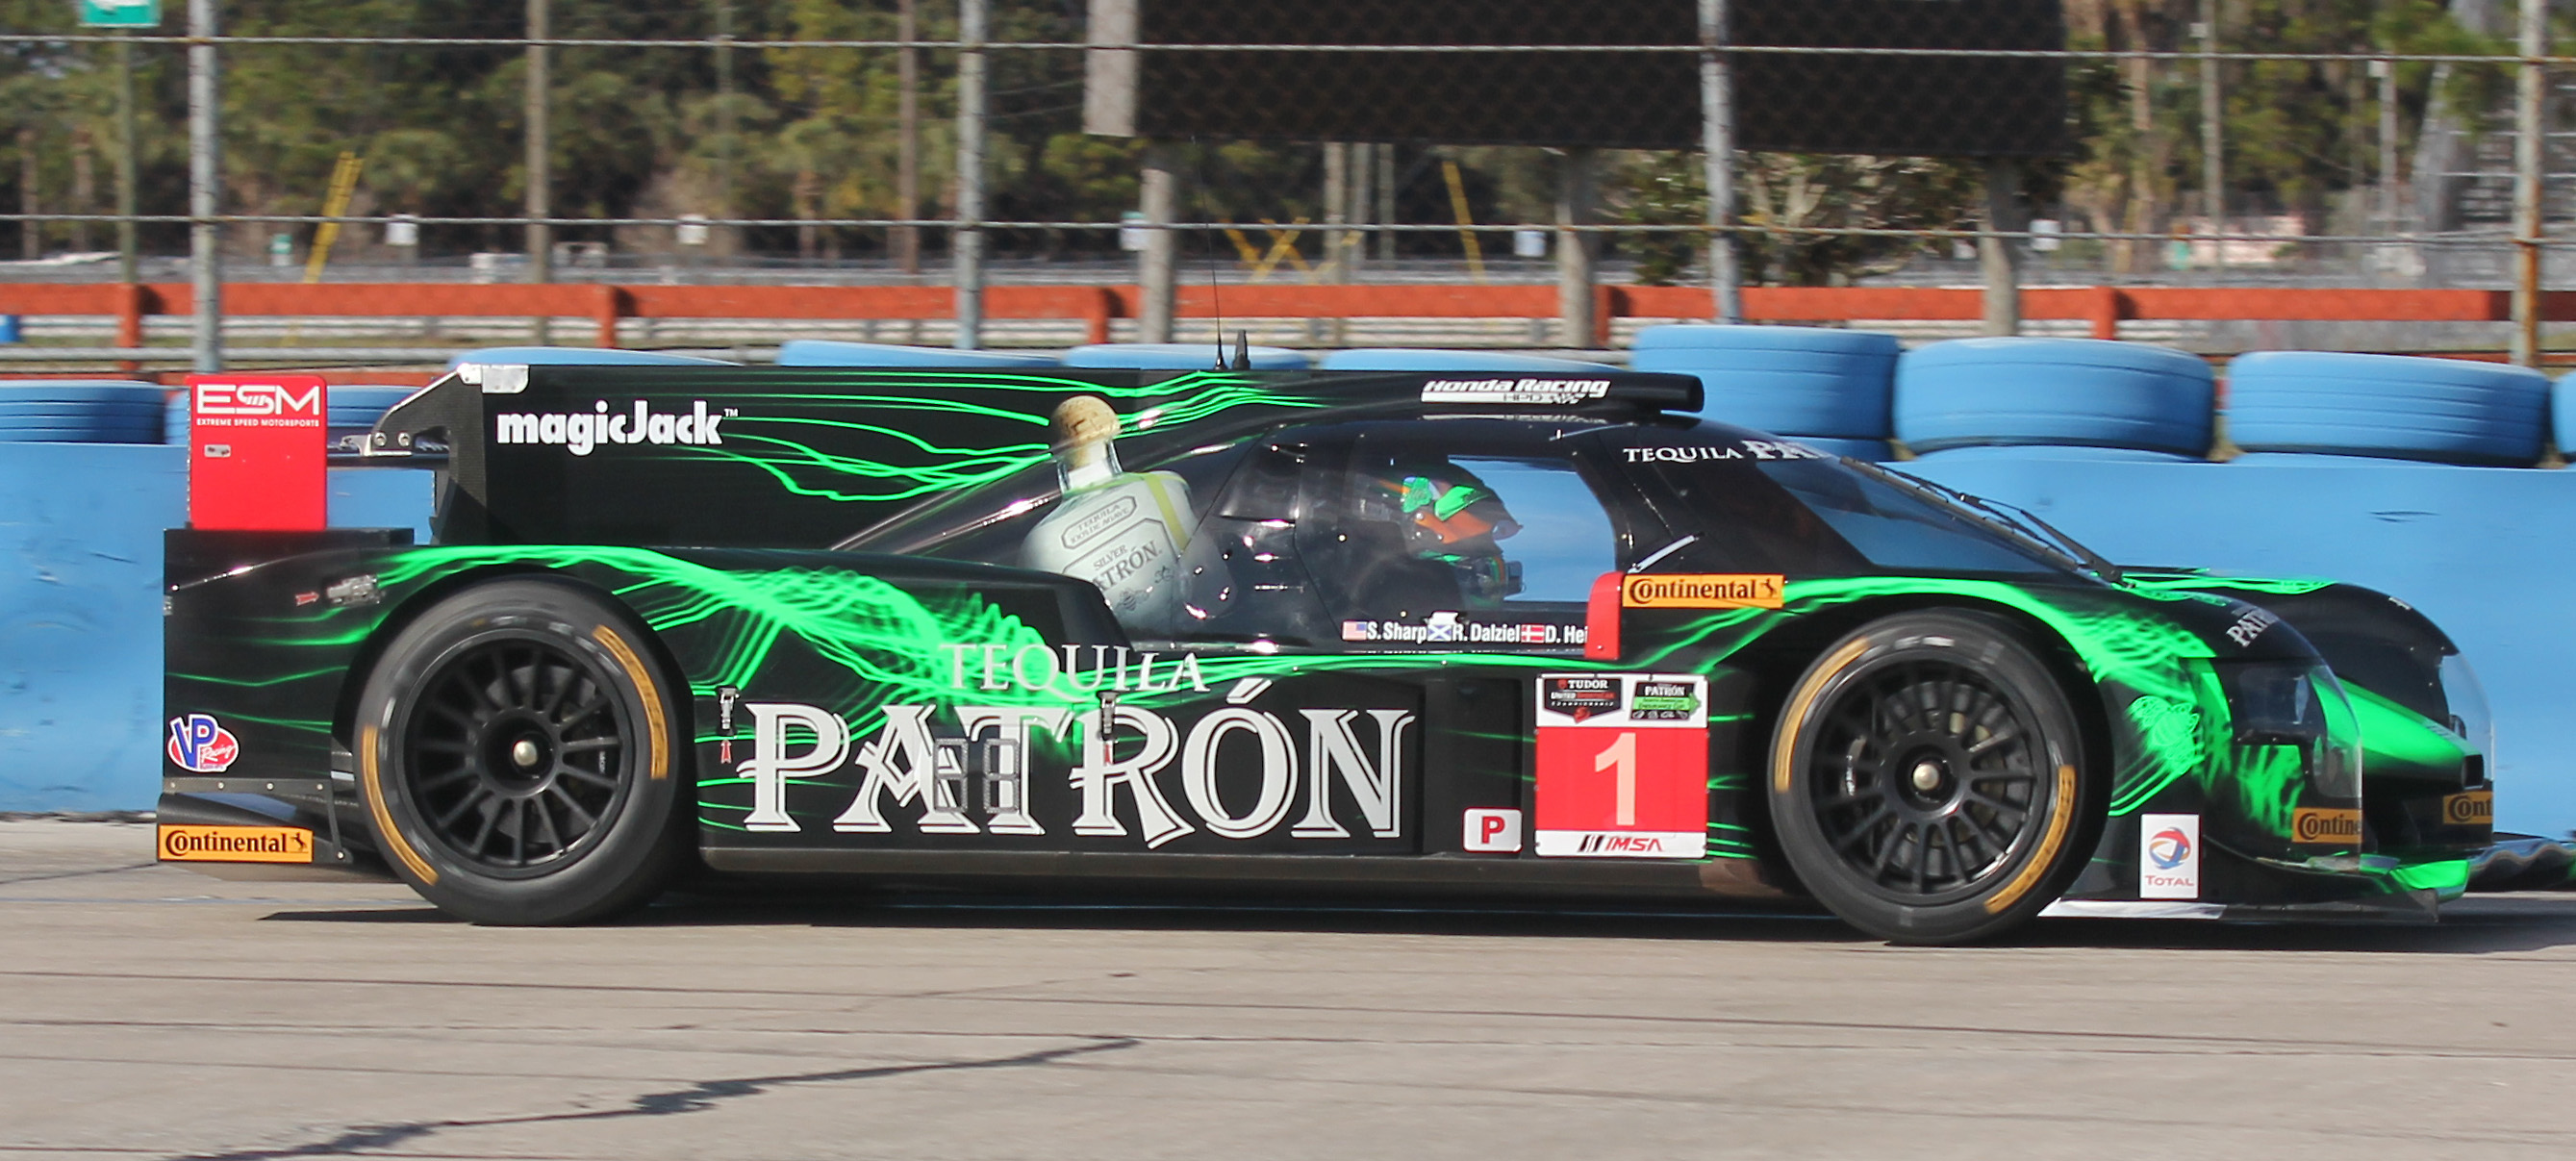 Tequila Patrón ESM's 2015 Worldwide Season Starts at Home and the Rolex 24